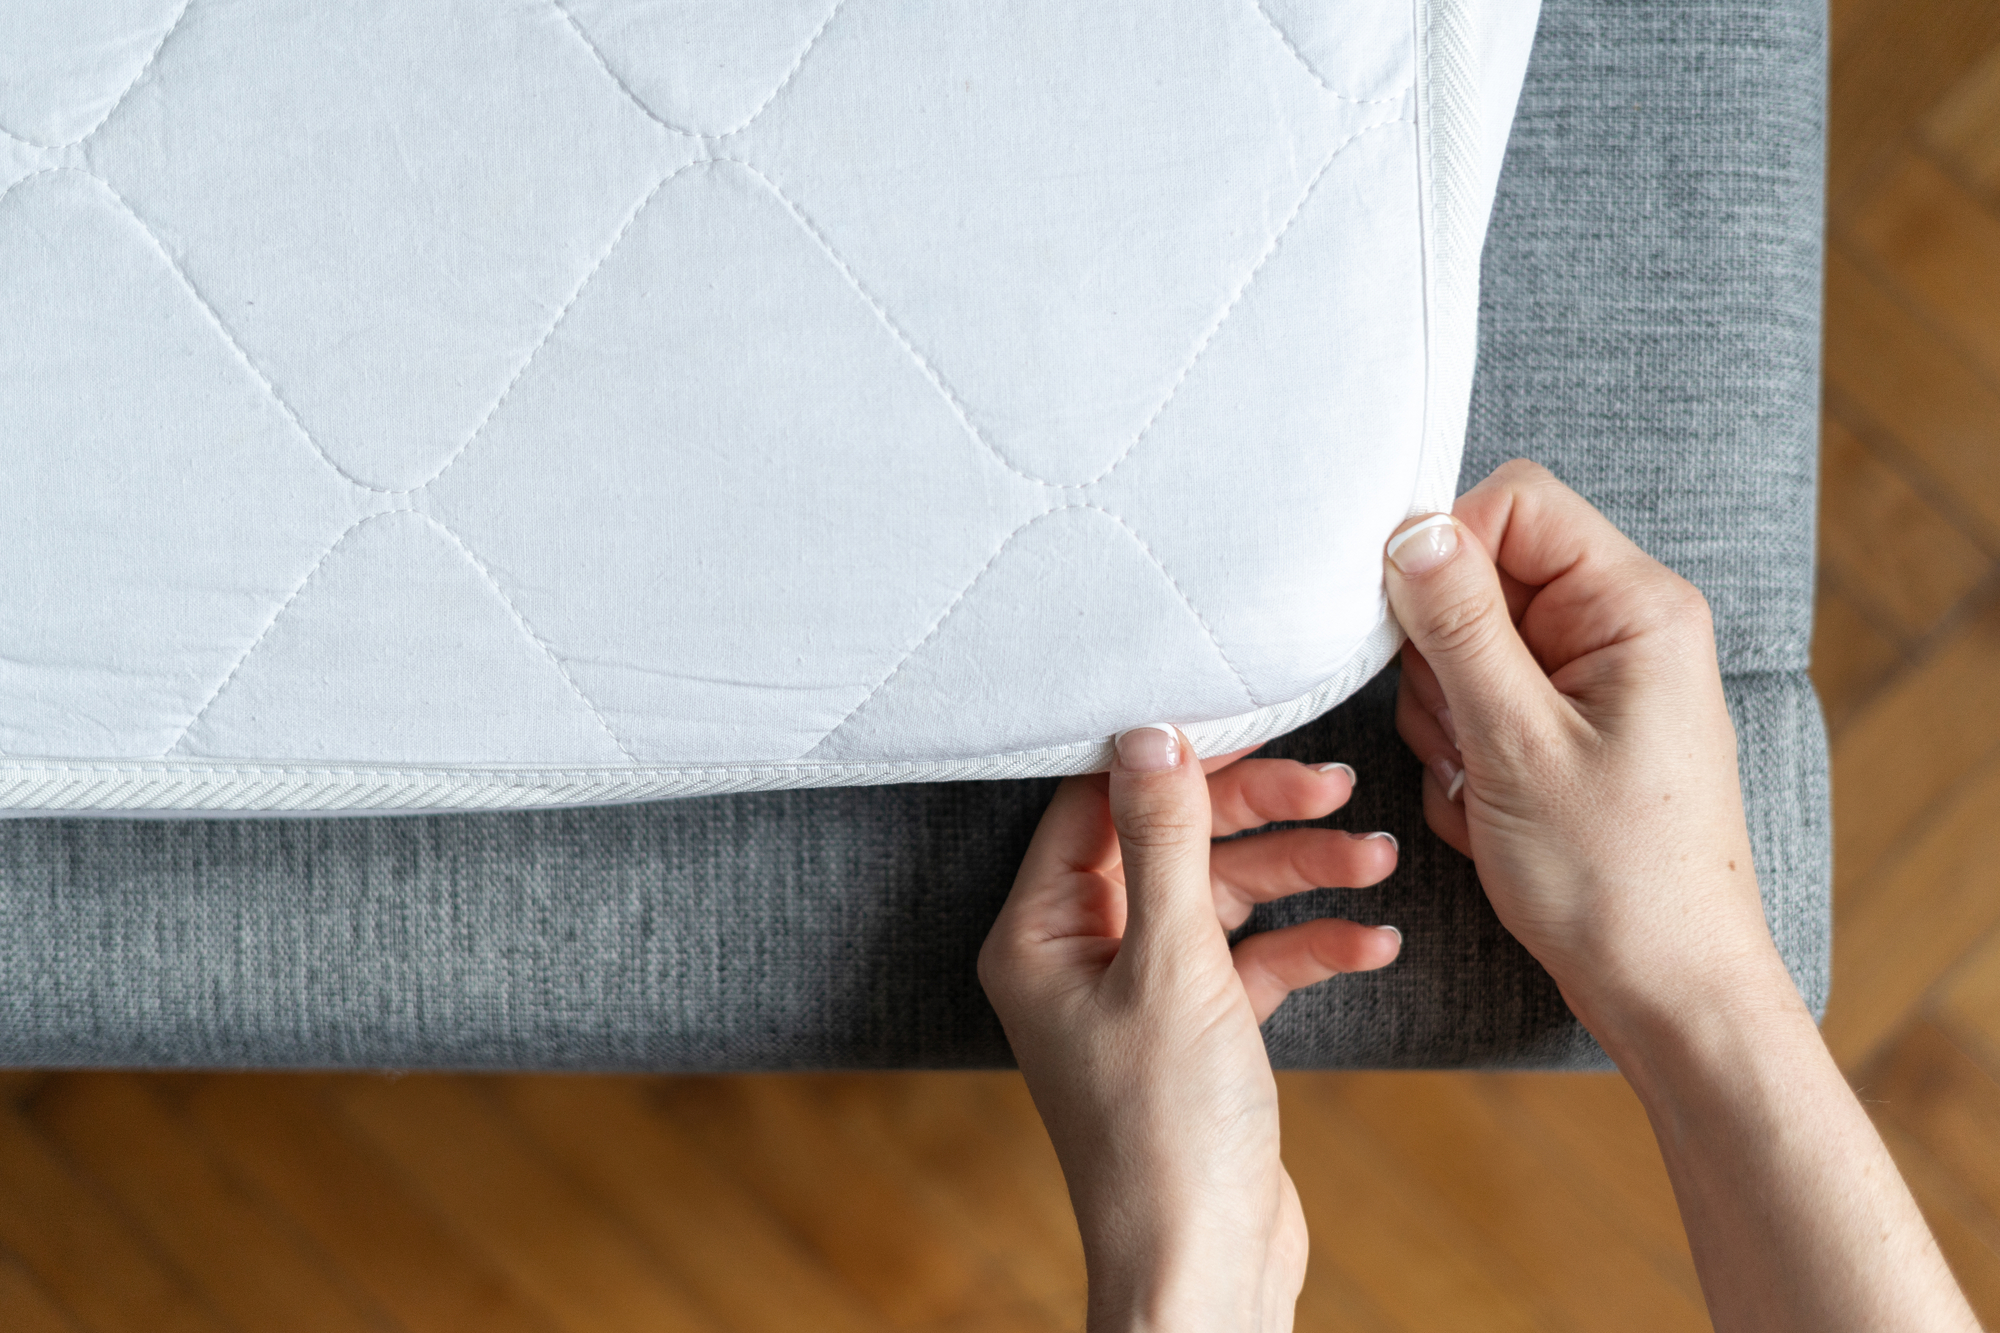 How to Use an Earthing Mattress Pad